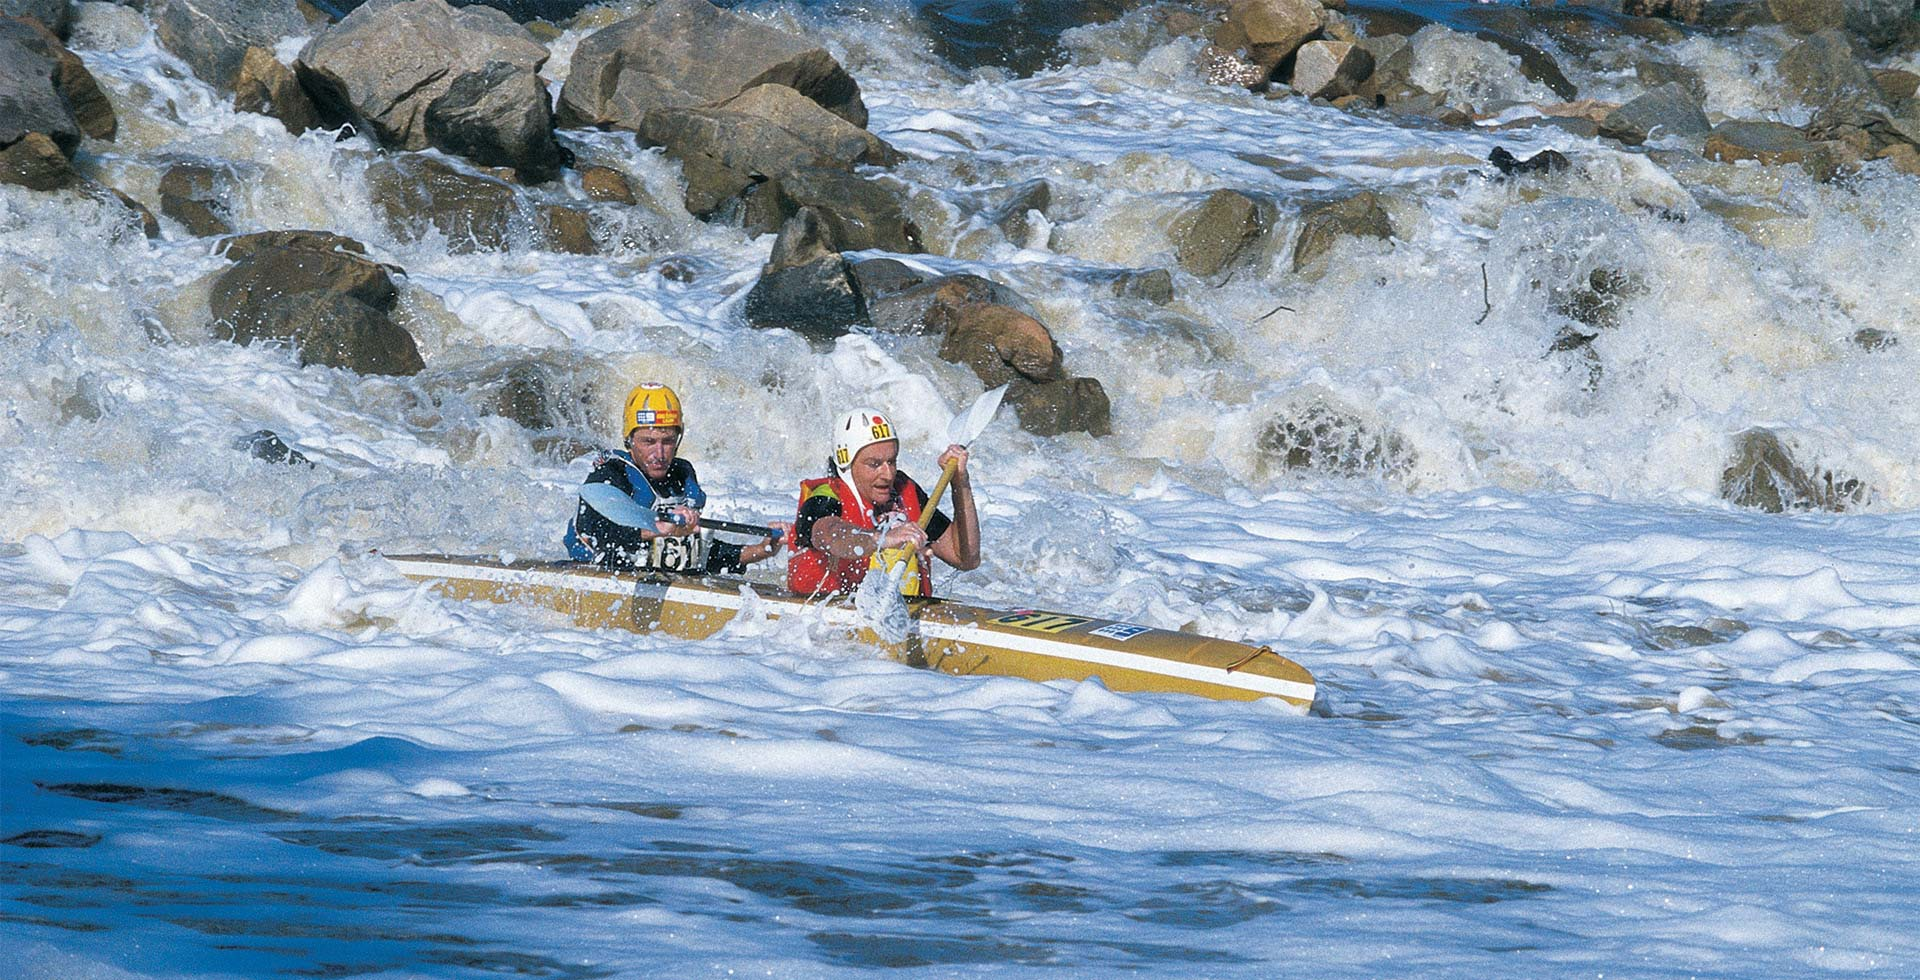 See the Avon Descent white water race near Toodyay